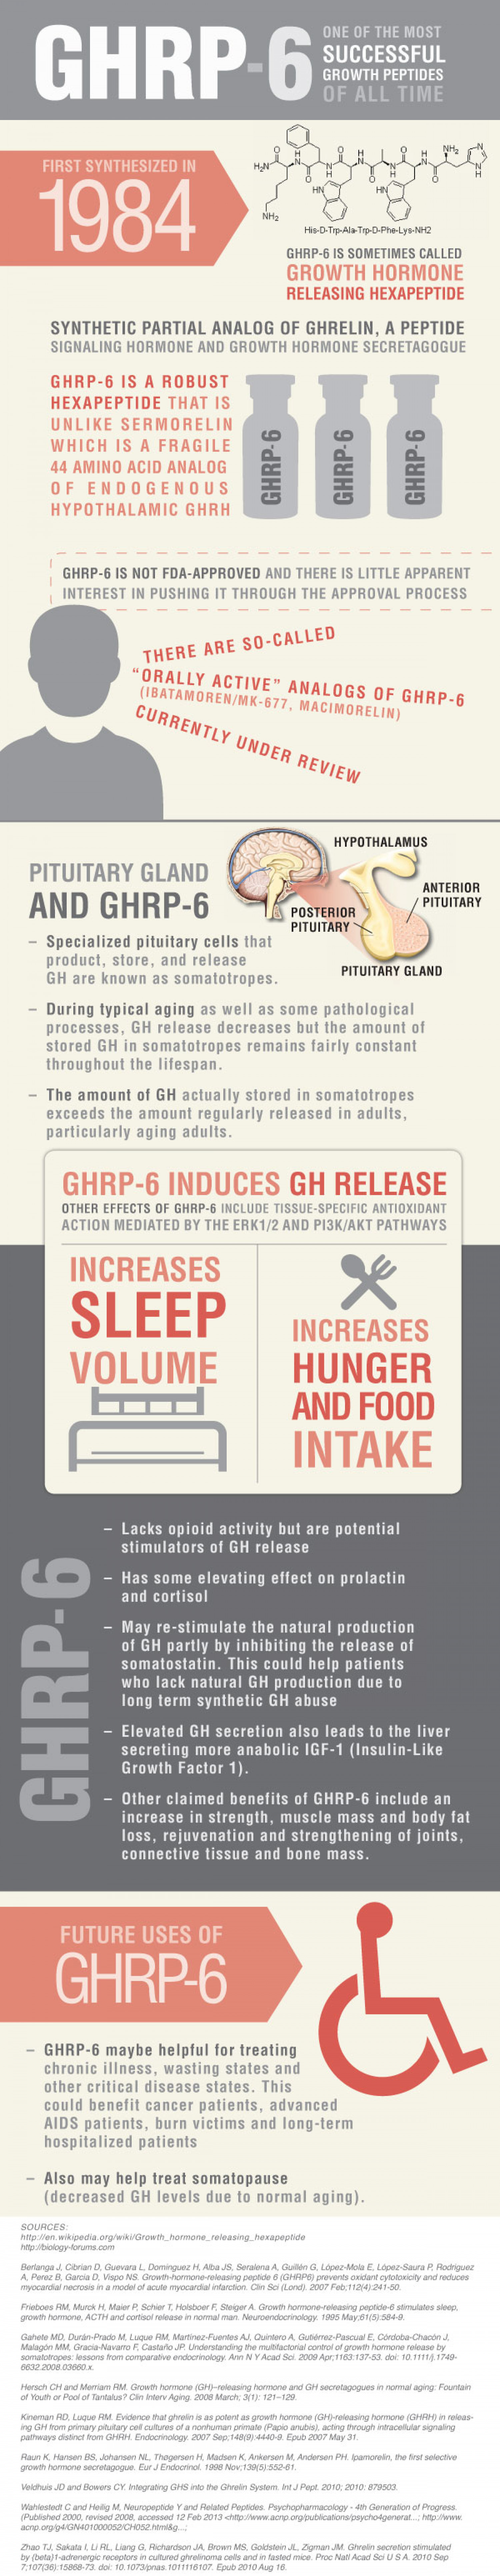 GHRP 6: One of the Most Successful Growth Peptides of All Time Infographic